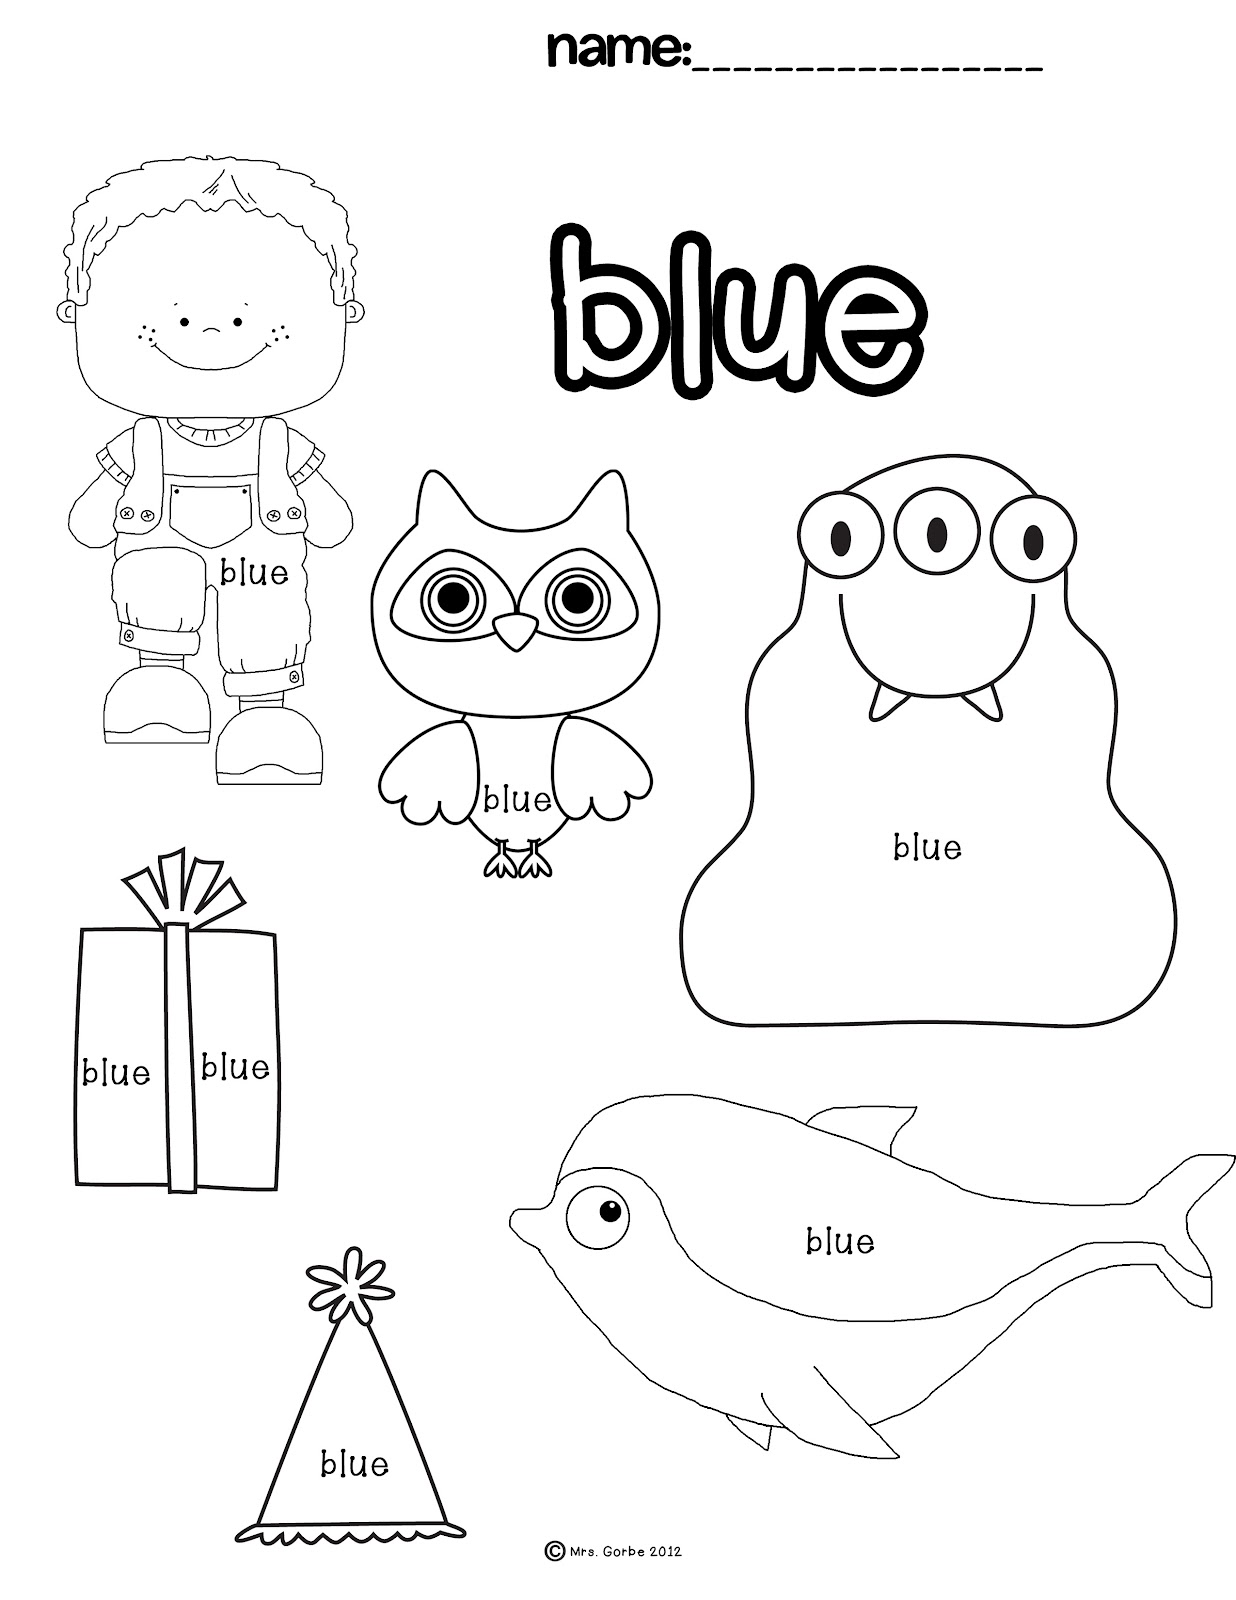 blue coloring pages - color blue worksheets preschool sketch coloring page